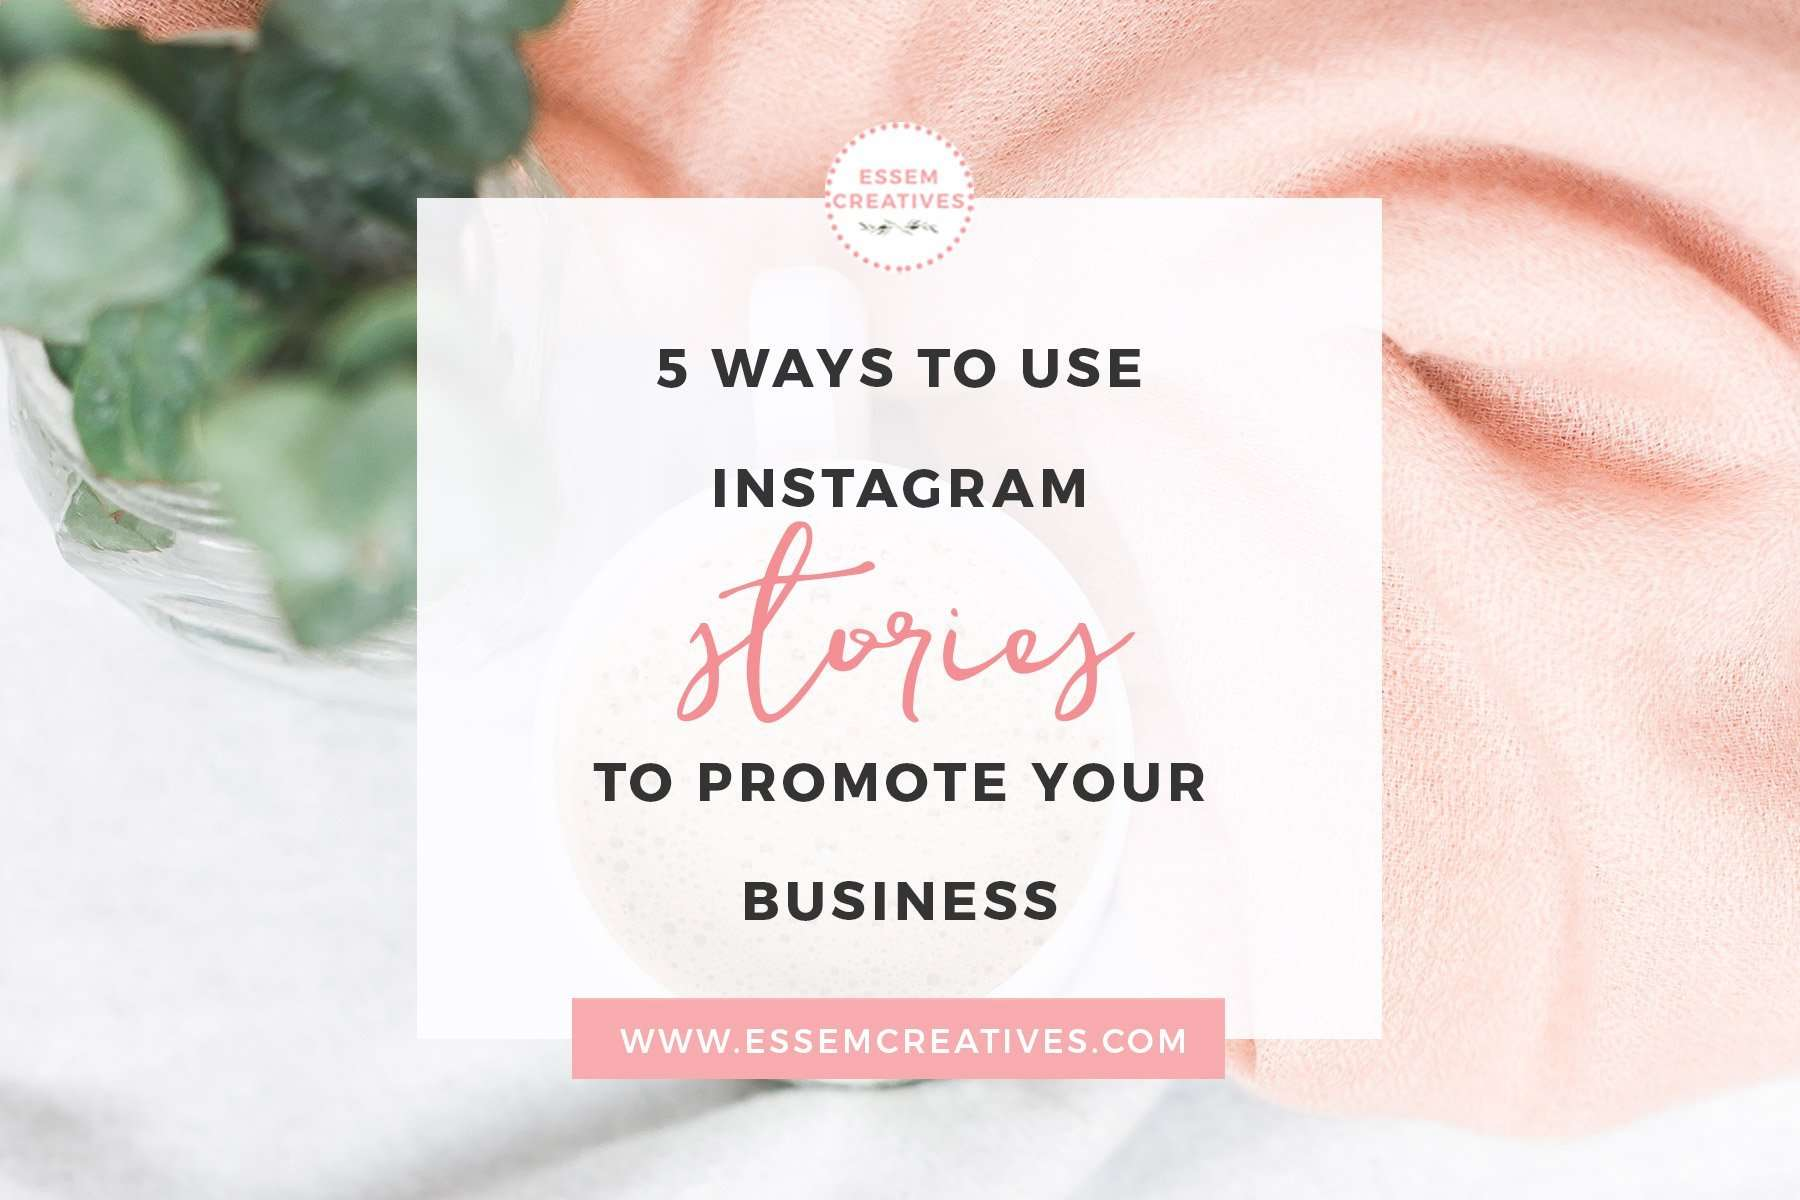 5 ways to use Instagram Stories to Promote your Business | Are you tired of the Instagram algorithm and just want to be seen by your audience? Then follow these tips to get engagement back on your Instagram account & grow your brand and business. Click to read the tips >>